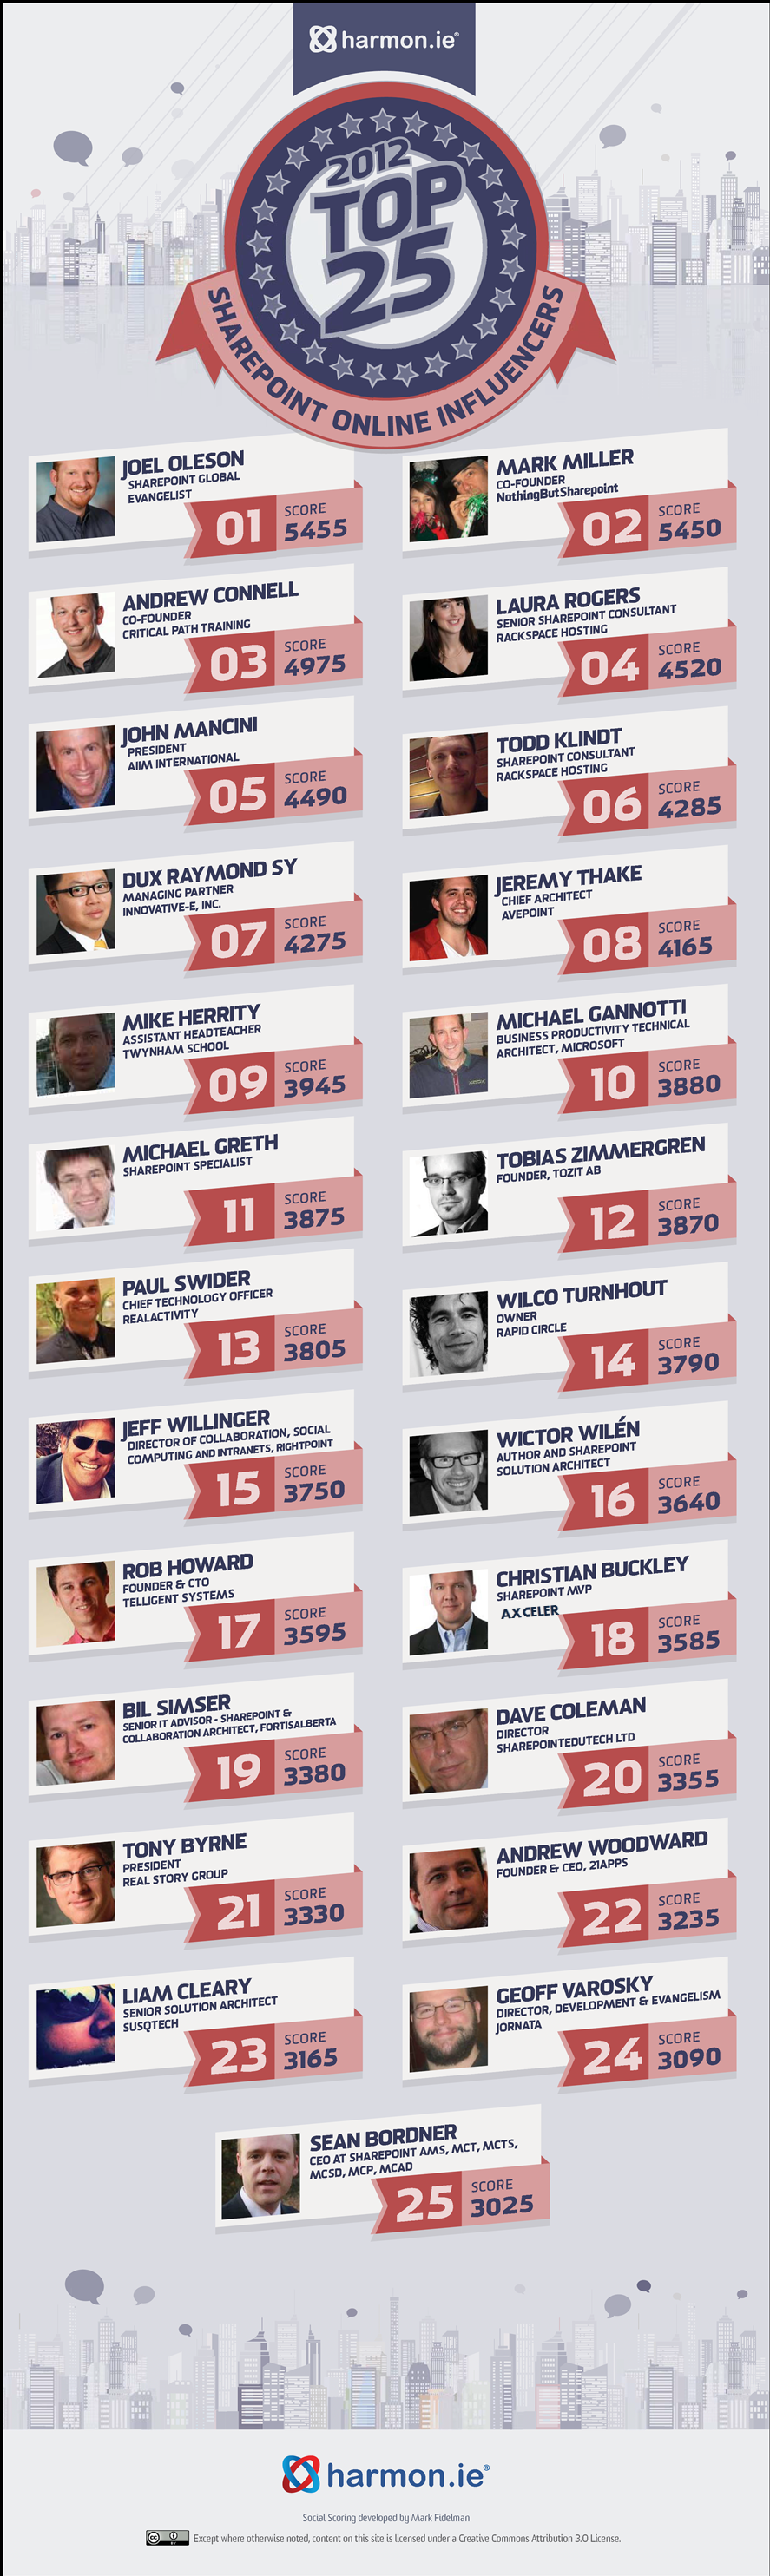 harmon.ie top 25 influencers 2012